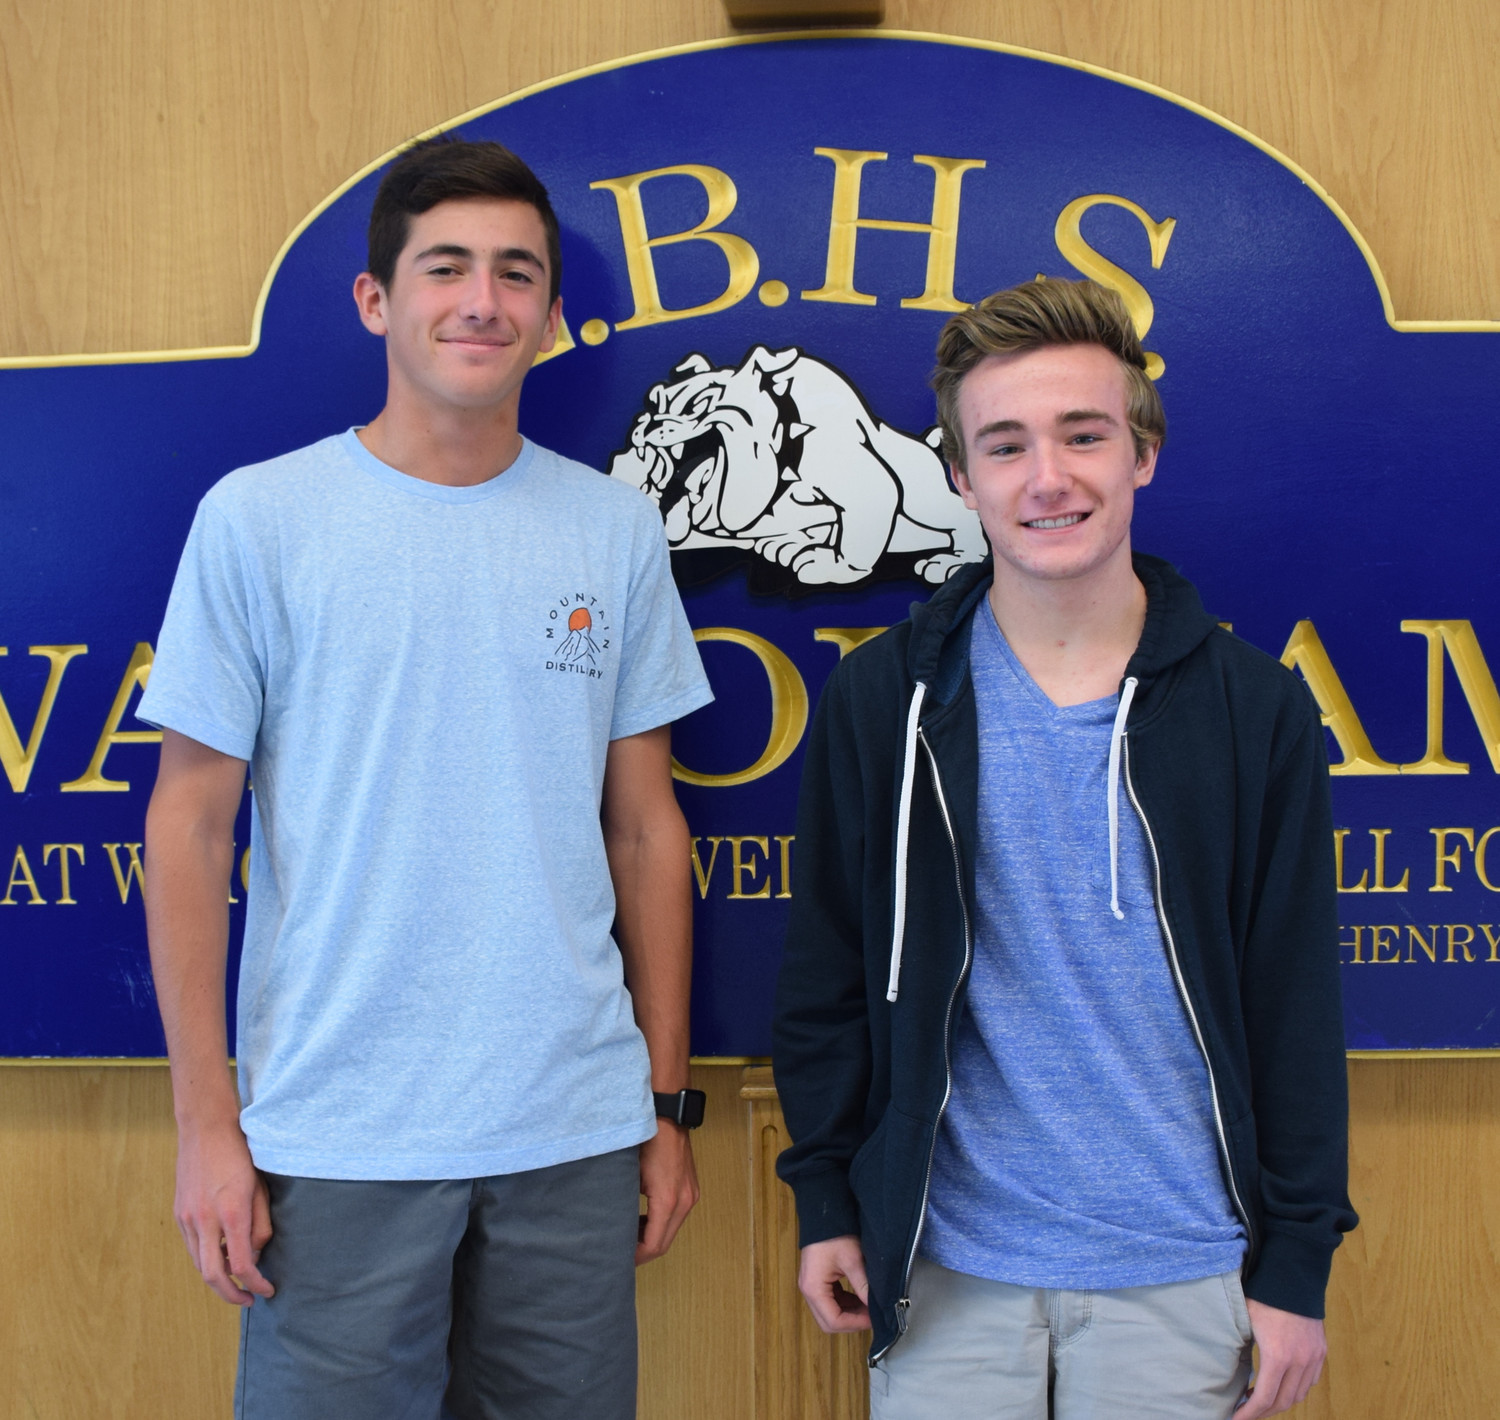 Dillon Razler, left, and Patrick Morris were named the Class of 2018's valedictorian and salutatorian, respectively.